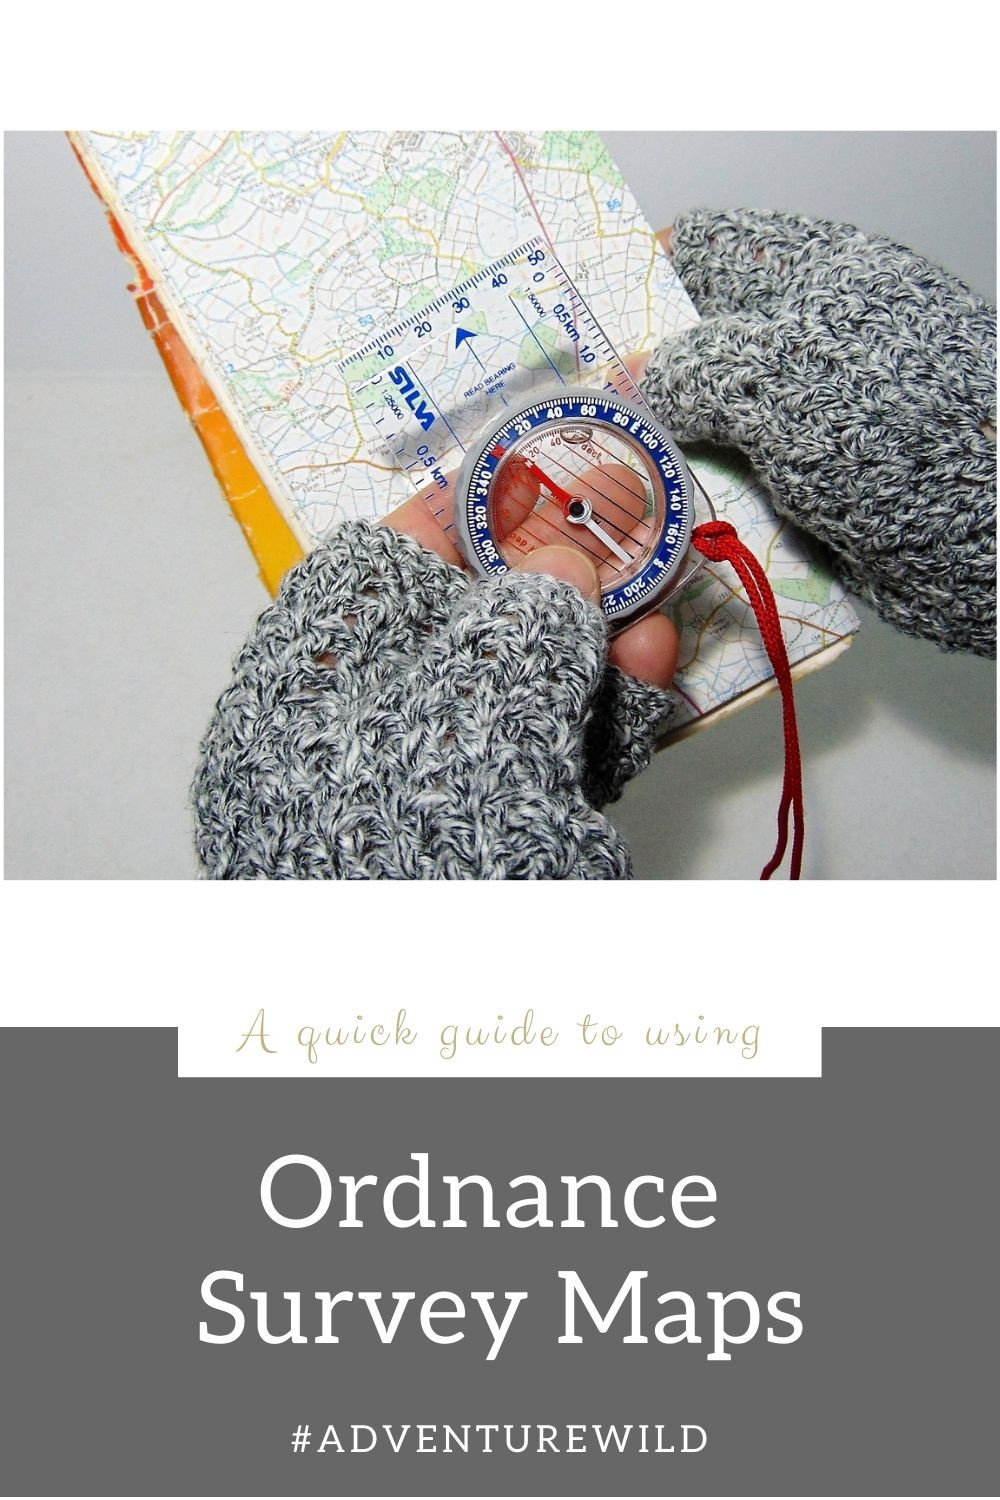 A quick guide to using Ordnance Survey Maps by Adventure Accessories